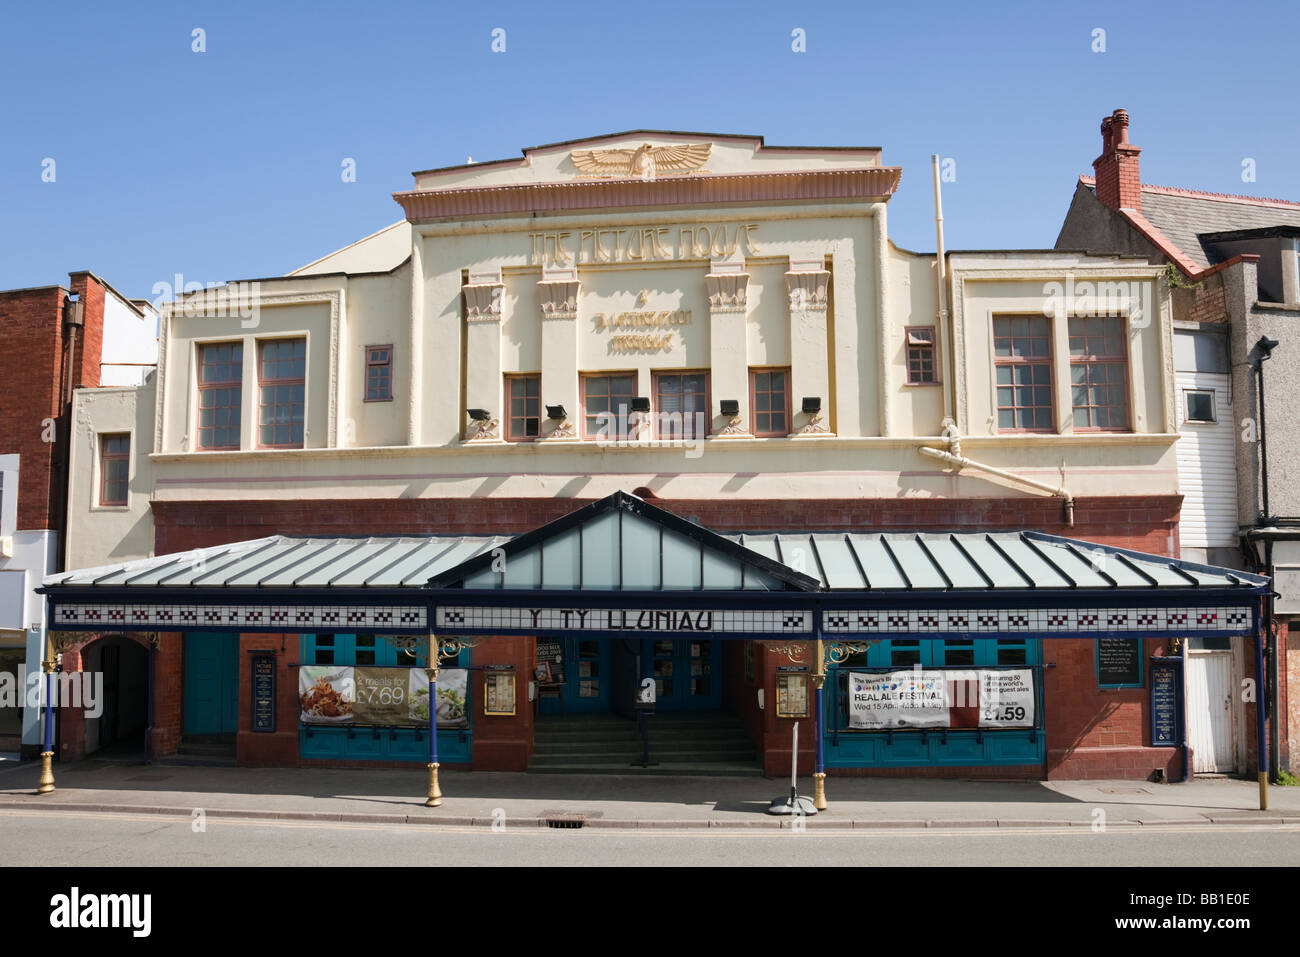 Wetherspoon Freehouse in the old Picture House building in Colwyn Bay Conwy North Wales UK Britain - Stock Image